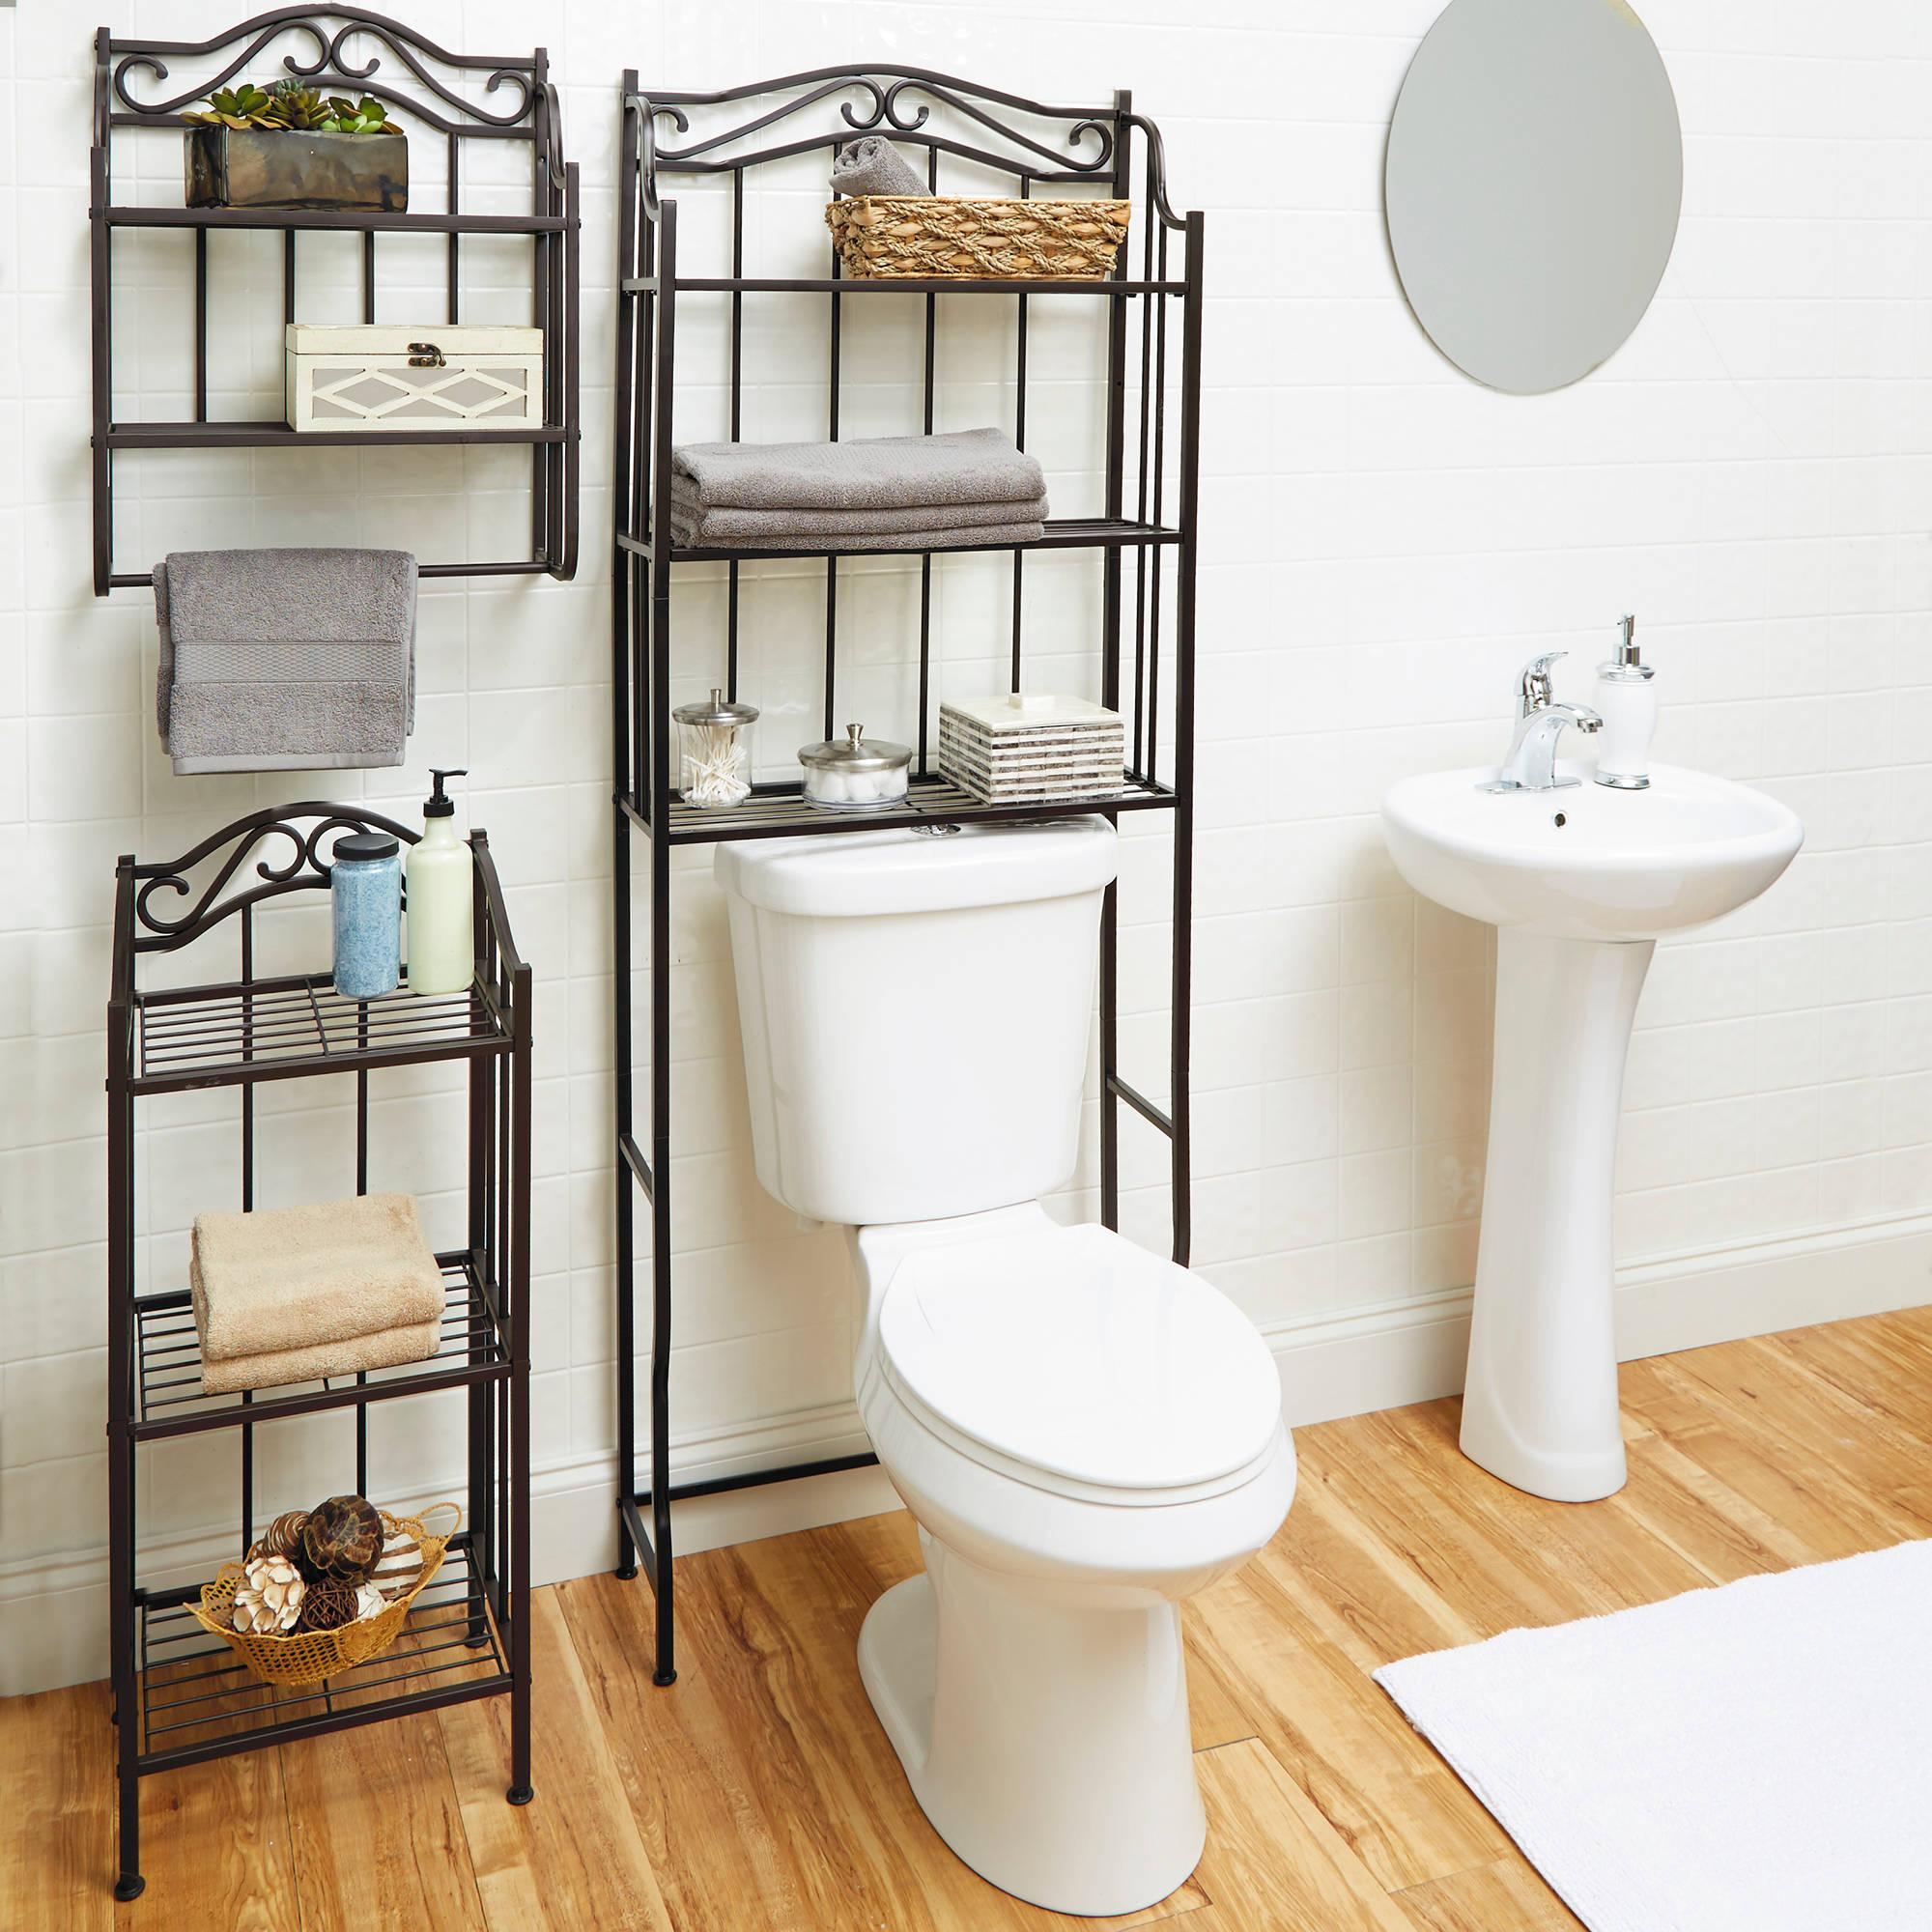 walmart ideas for units of size towel bathroom full livingroom rack shelving small storage decorating